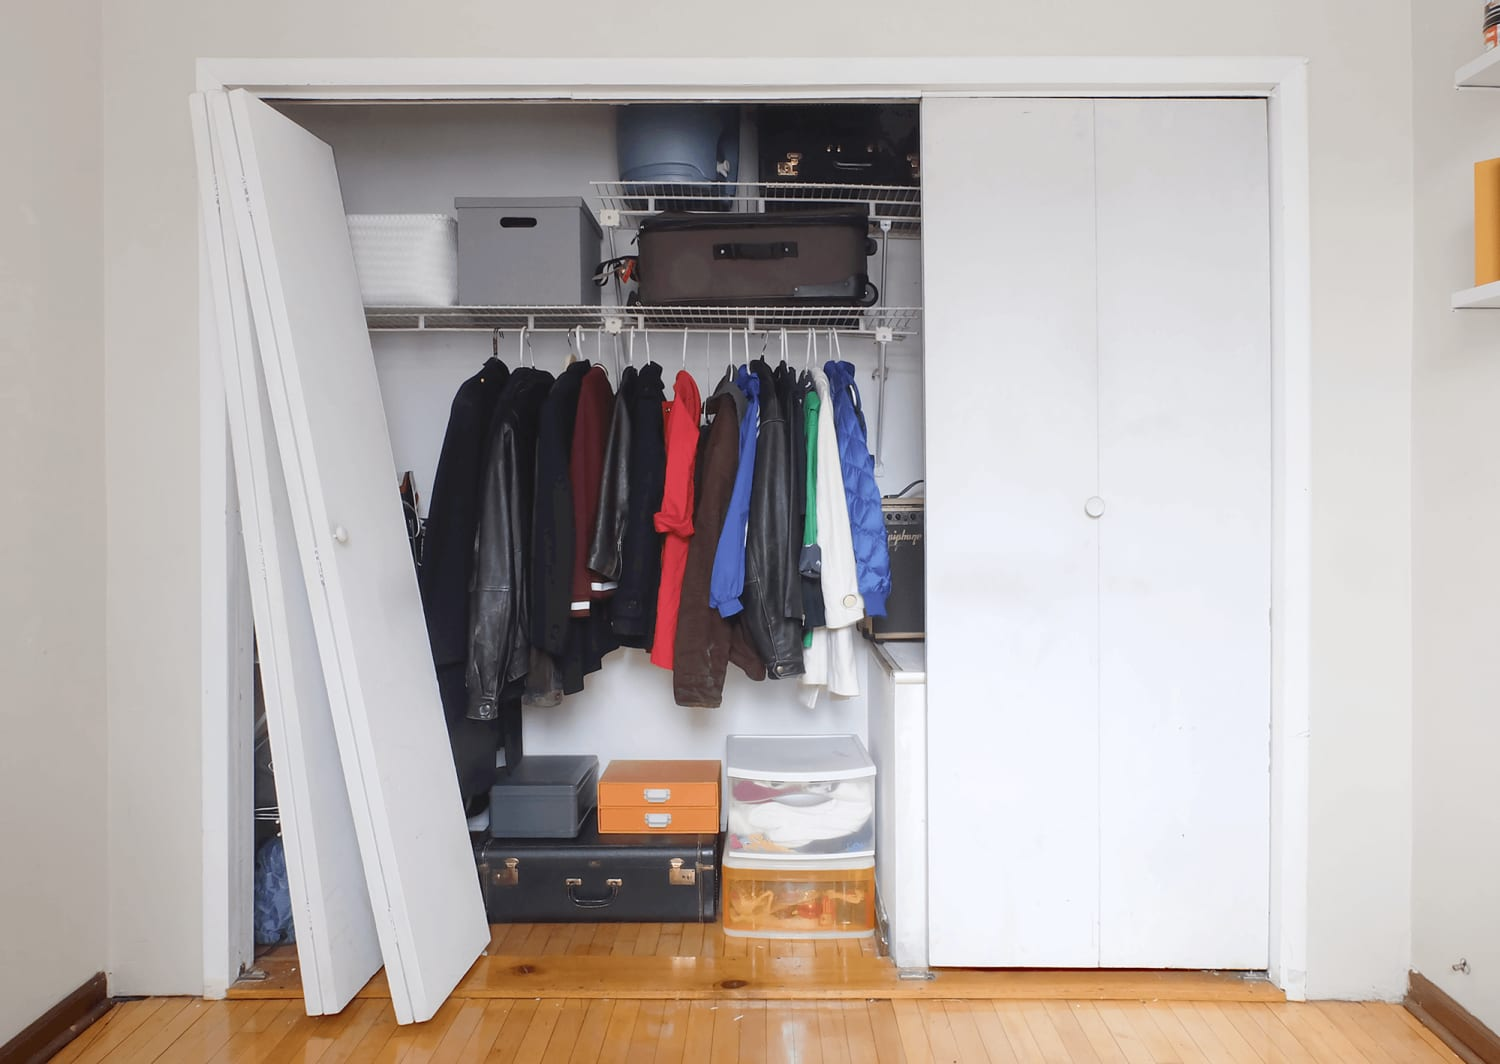 4 Messes, 4 Makeovers: Real Life Redos of Some Very Disorganized Closets